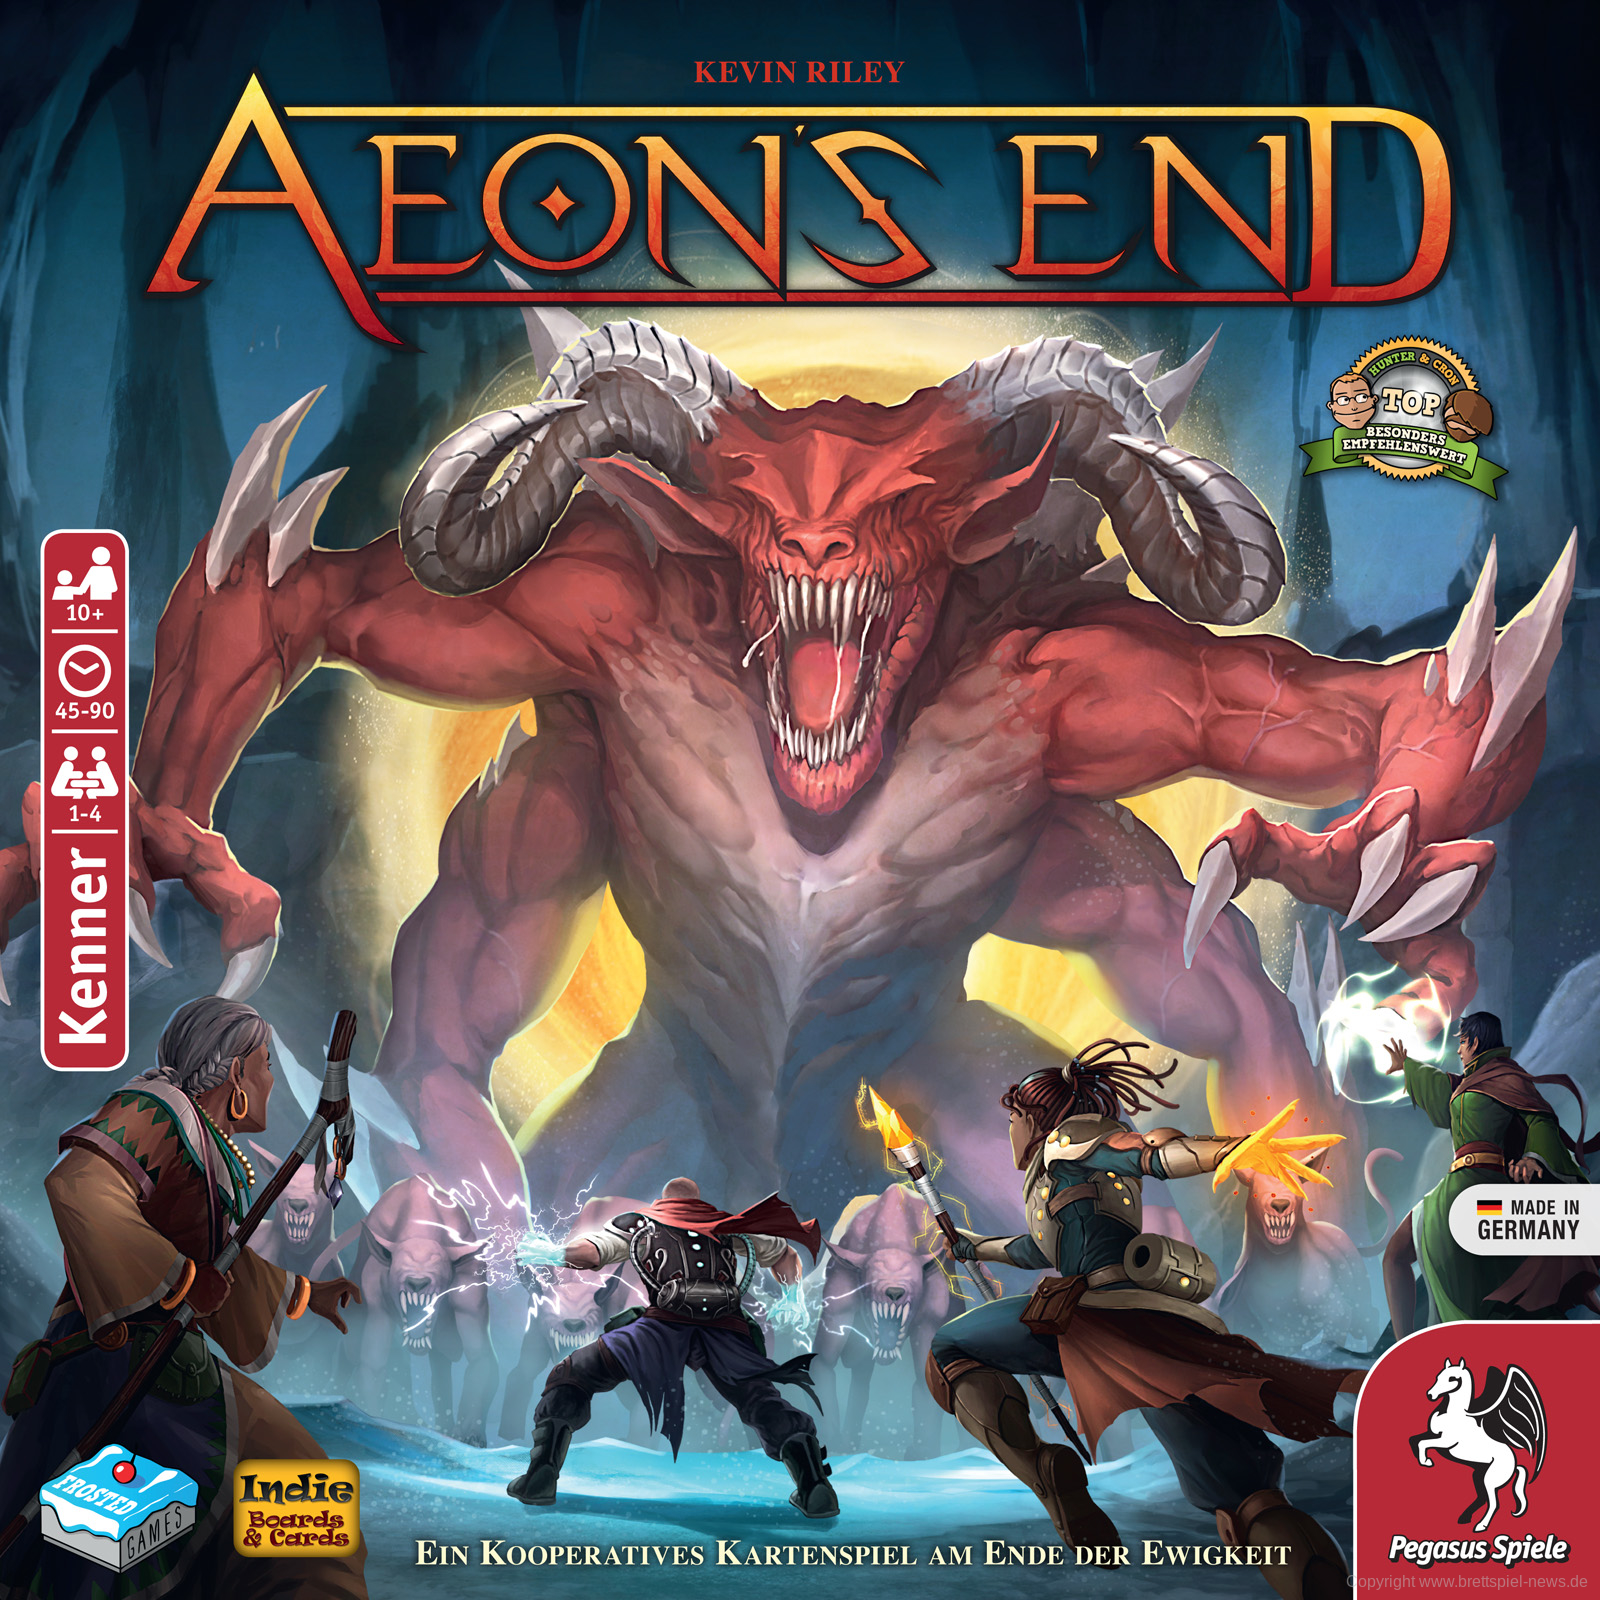 AEons END cover